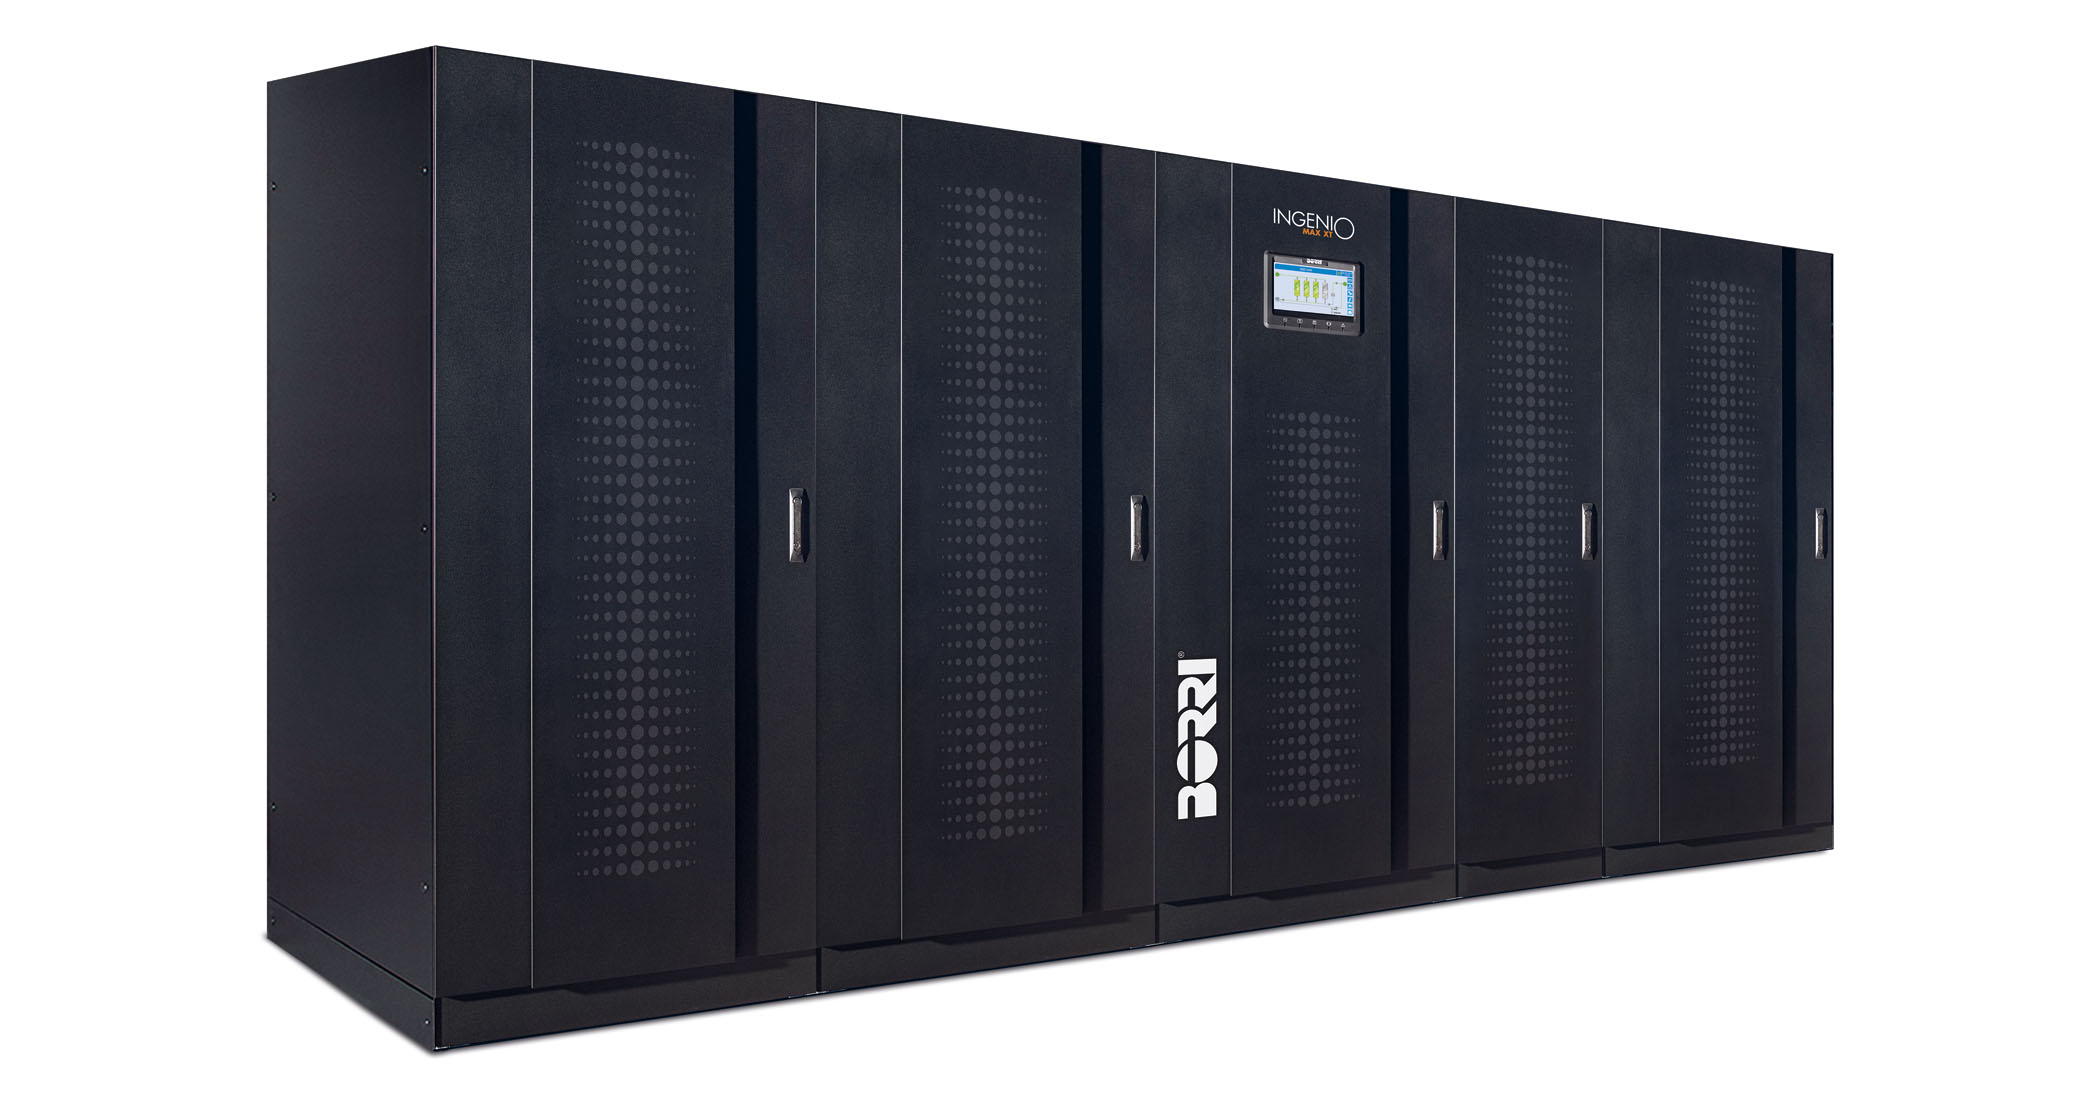 Borri Ingenio MAX XT Scalable UPS for data centres